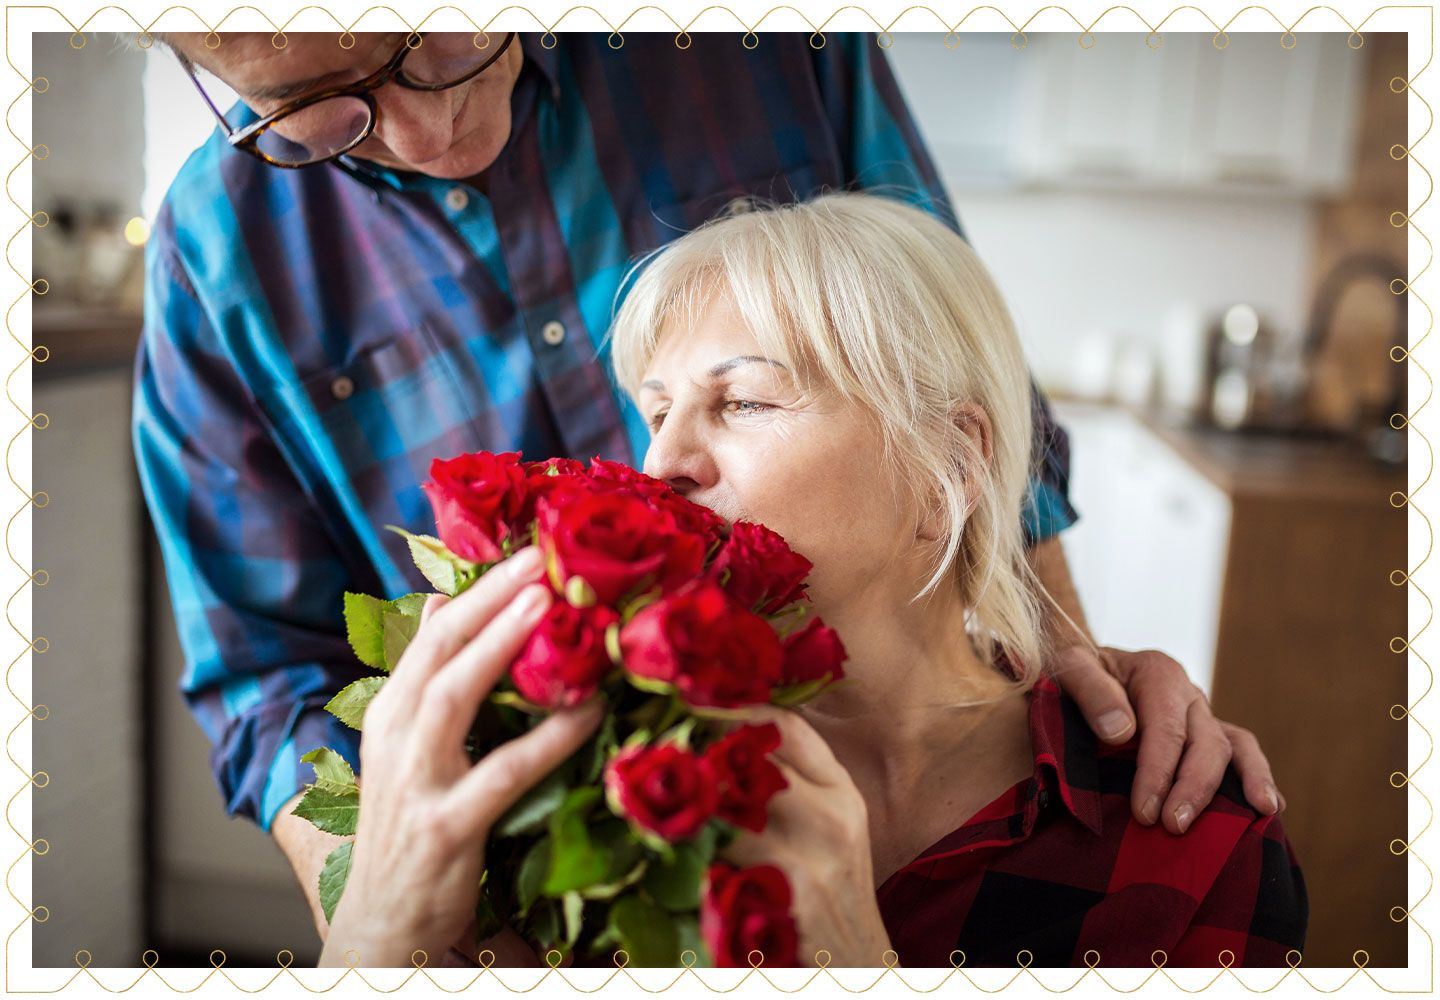 older woman smelling a bouquet of red roses while her partner leans over her shoulder smiling down at her